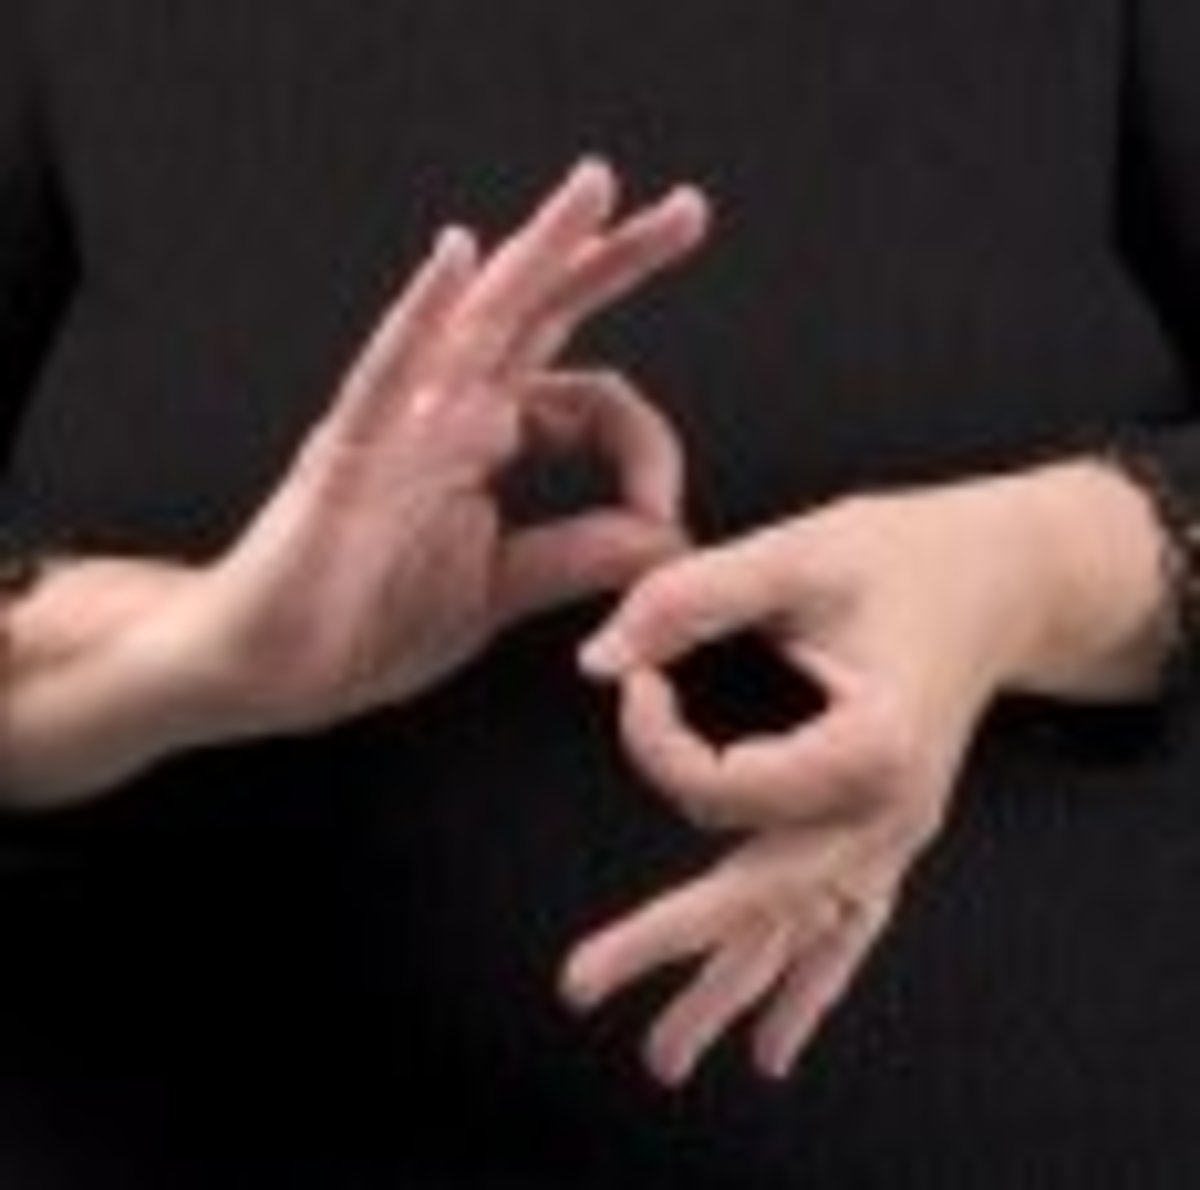 Teach Yourself American Sign Language - Basic Sign Language Studies Online